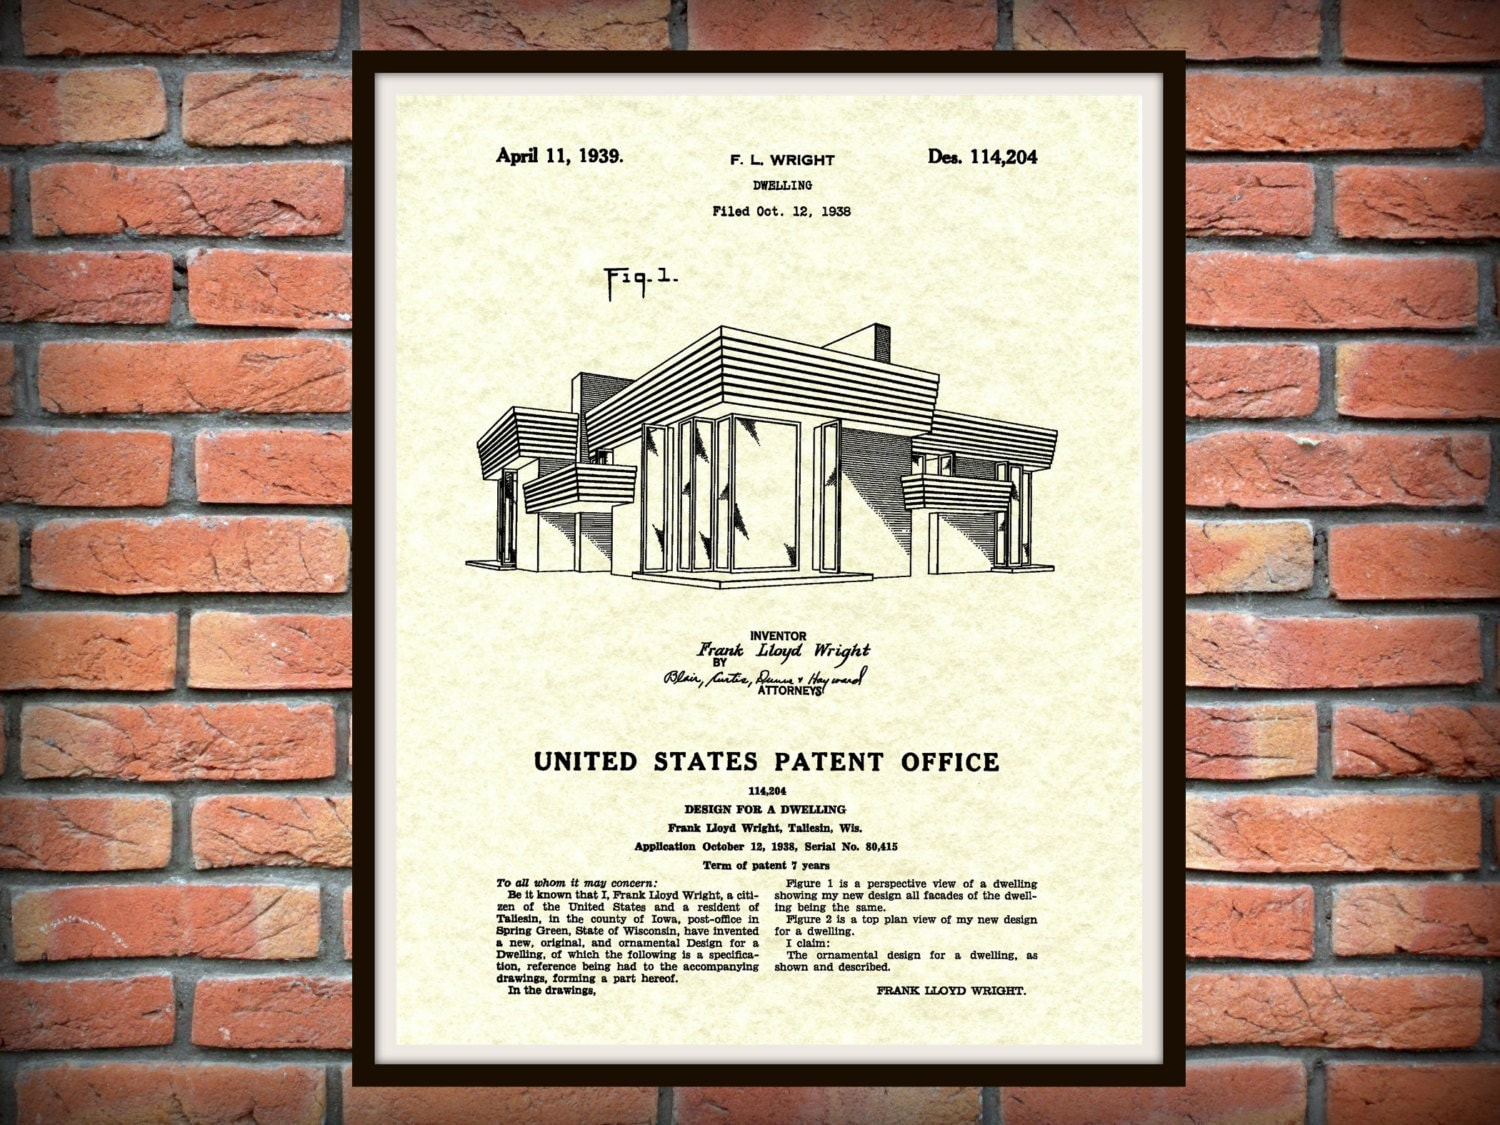 patent 1939 frank lloyd wright house architecture